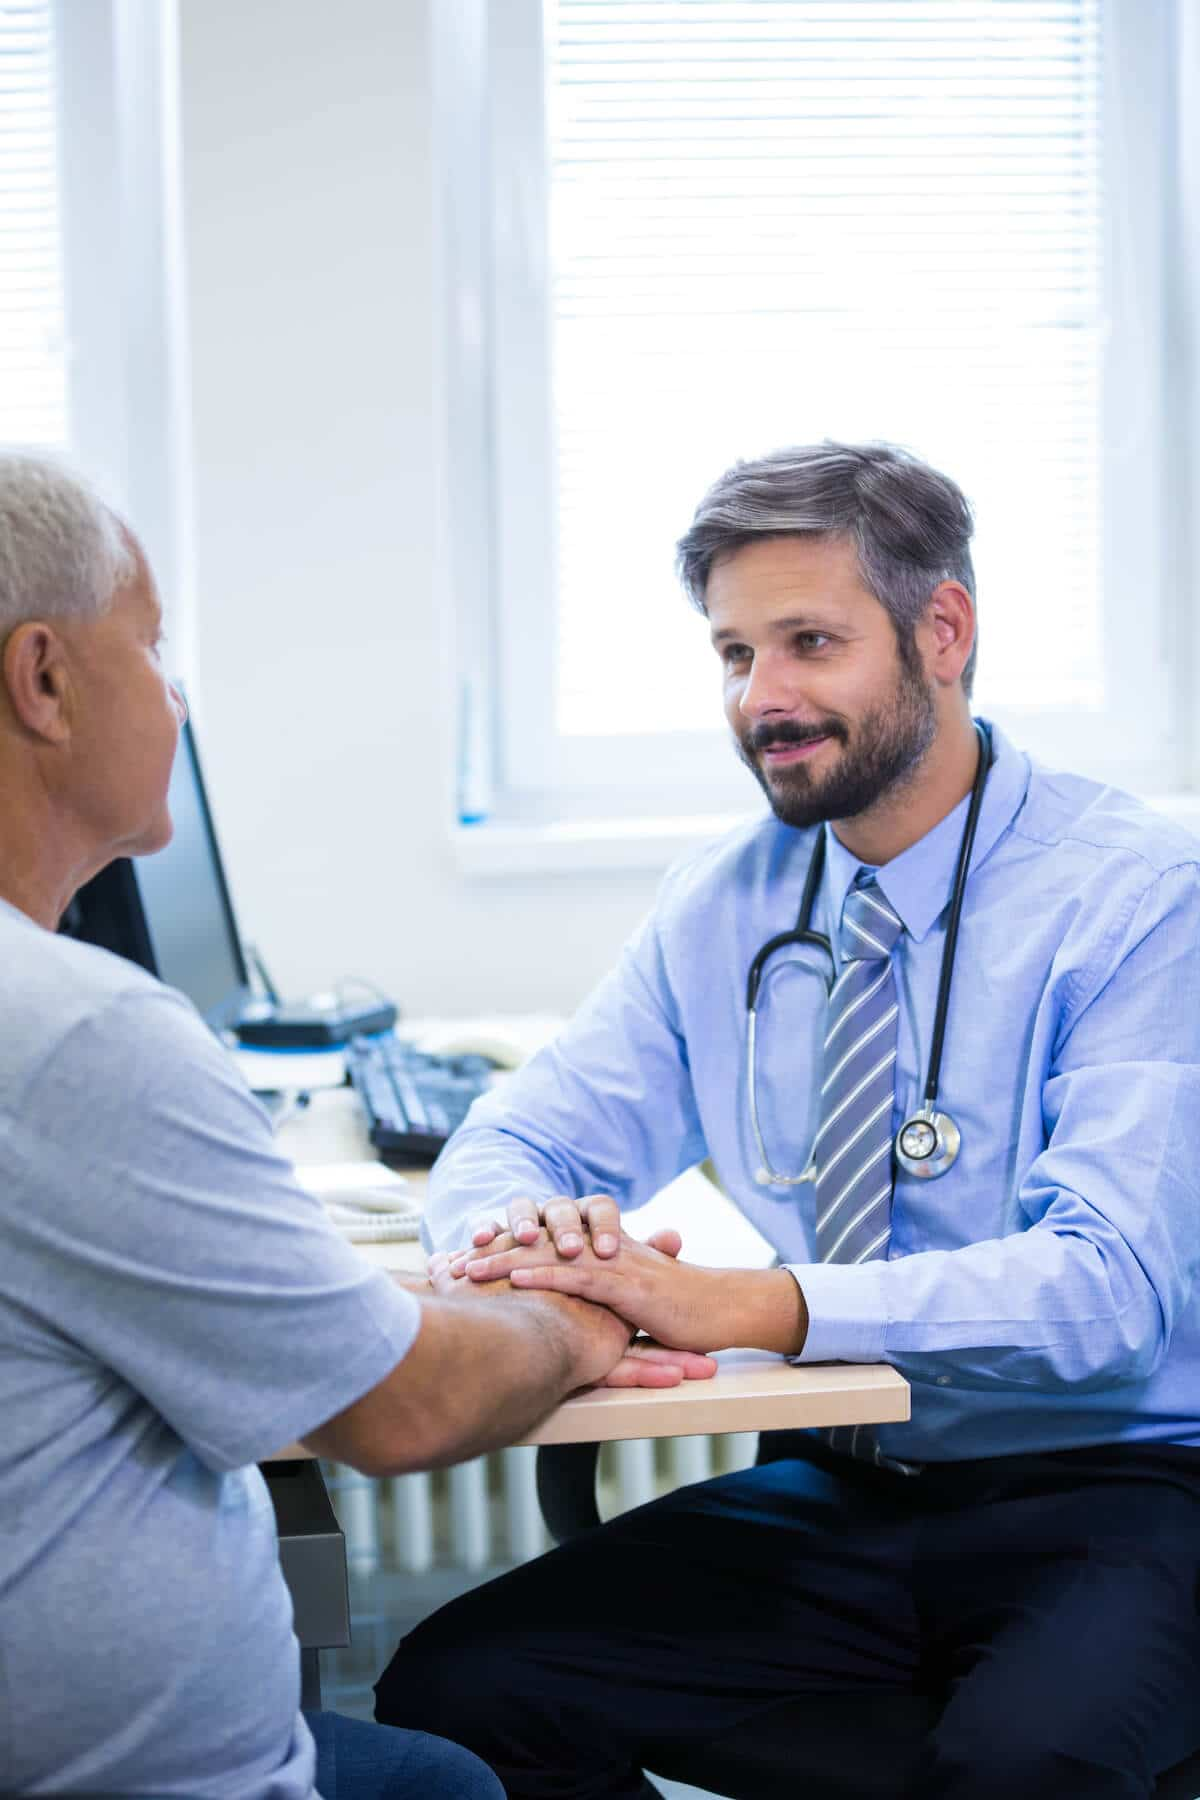 male doctor consulting with patient